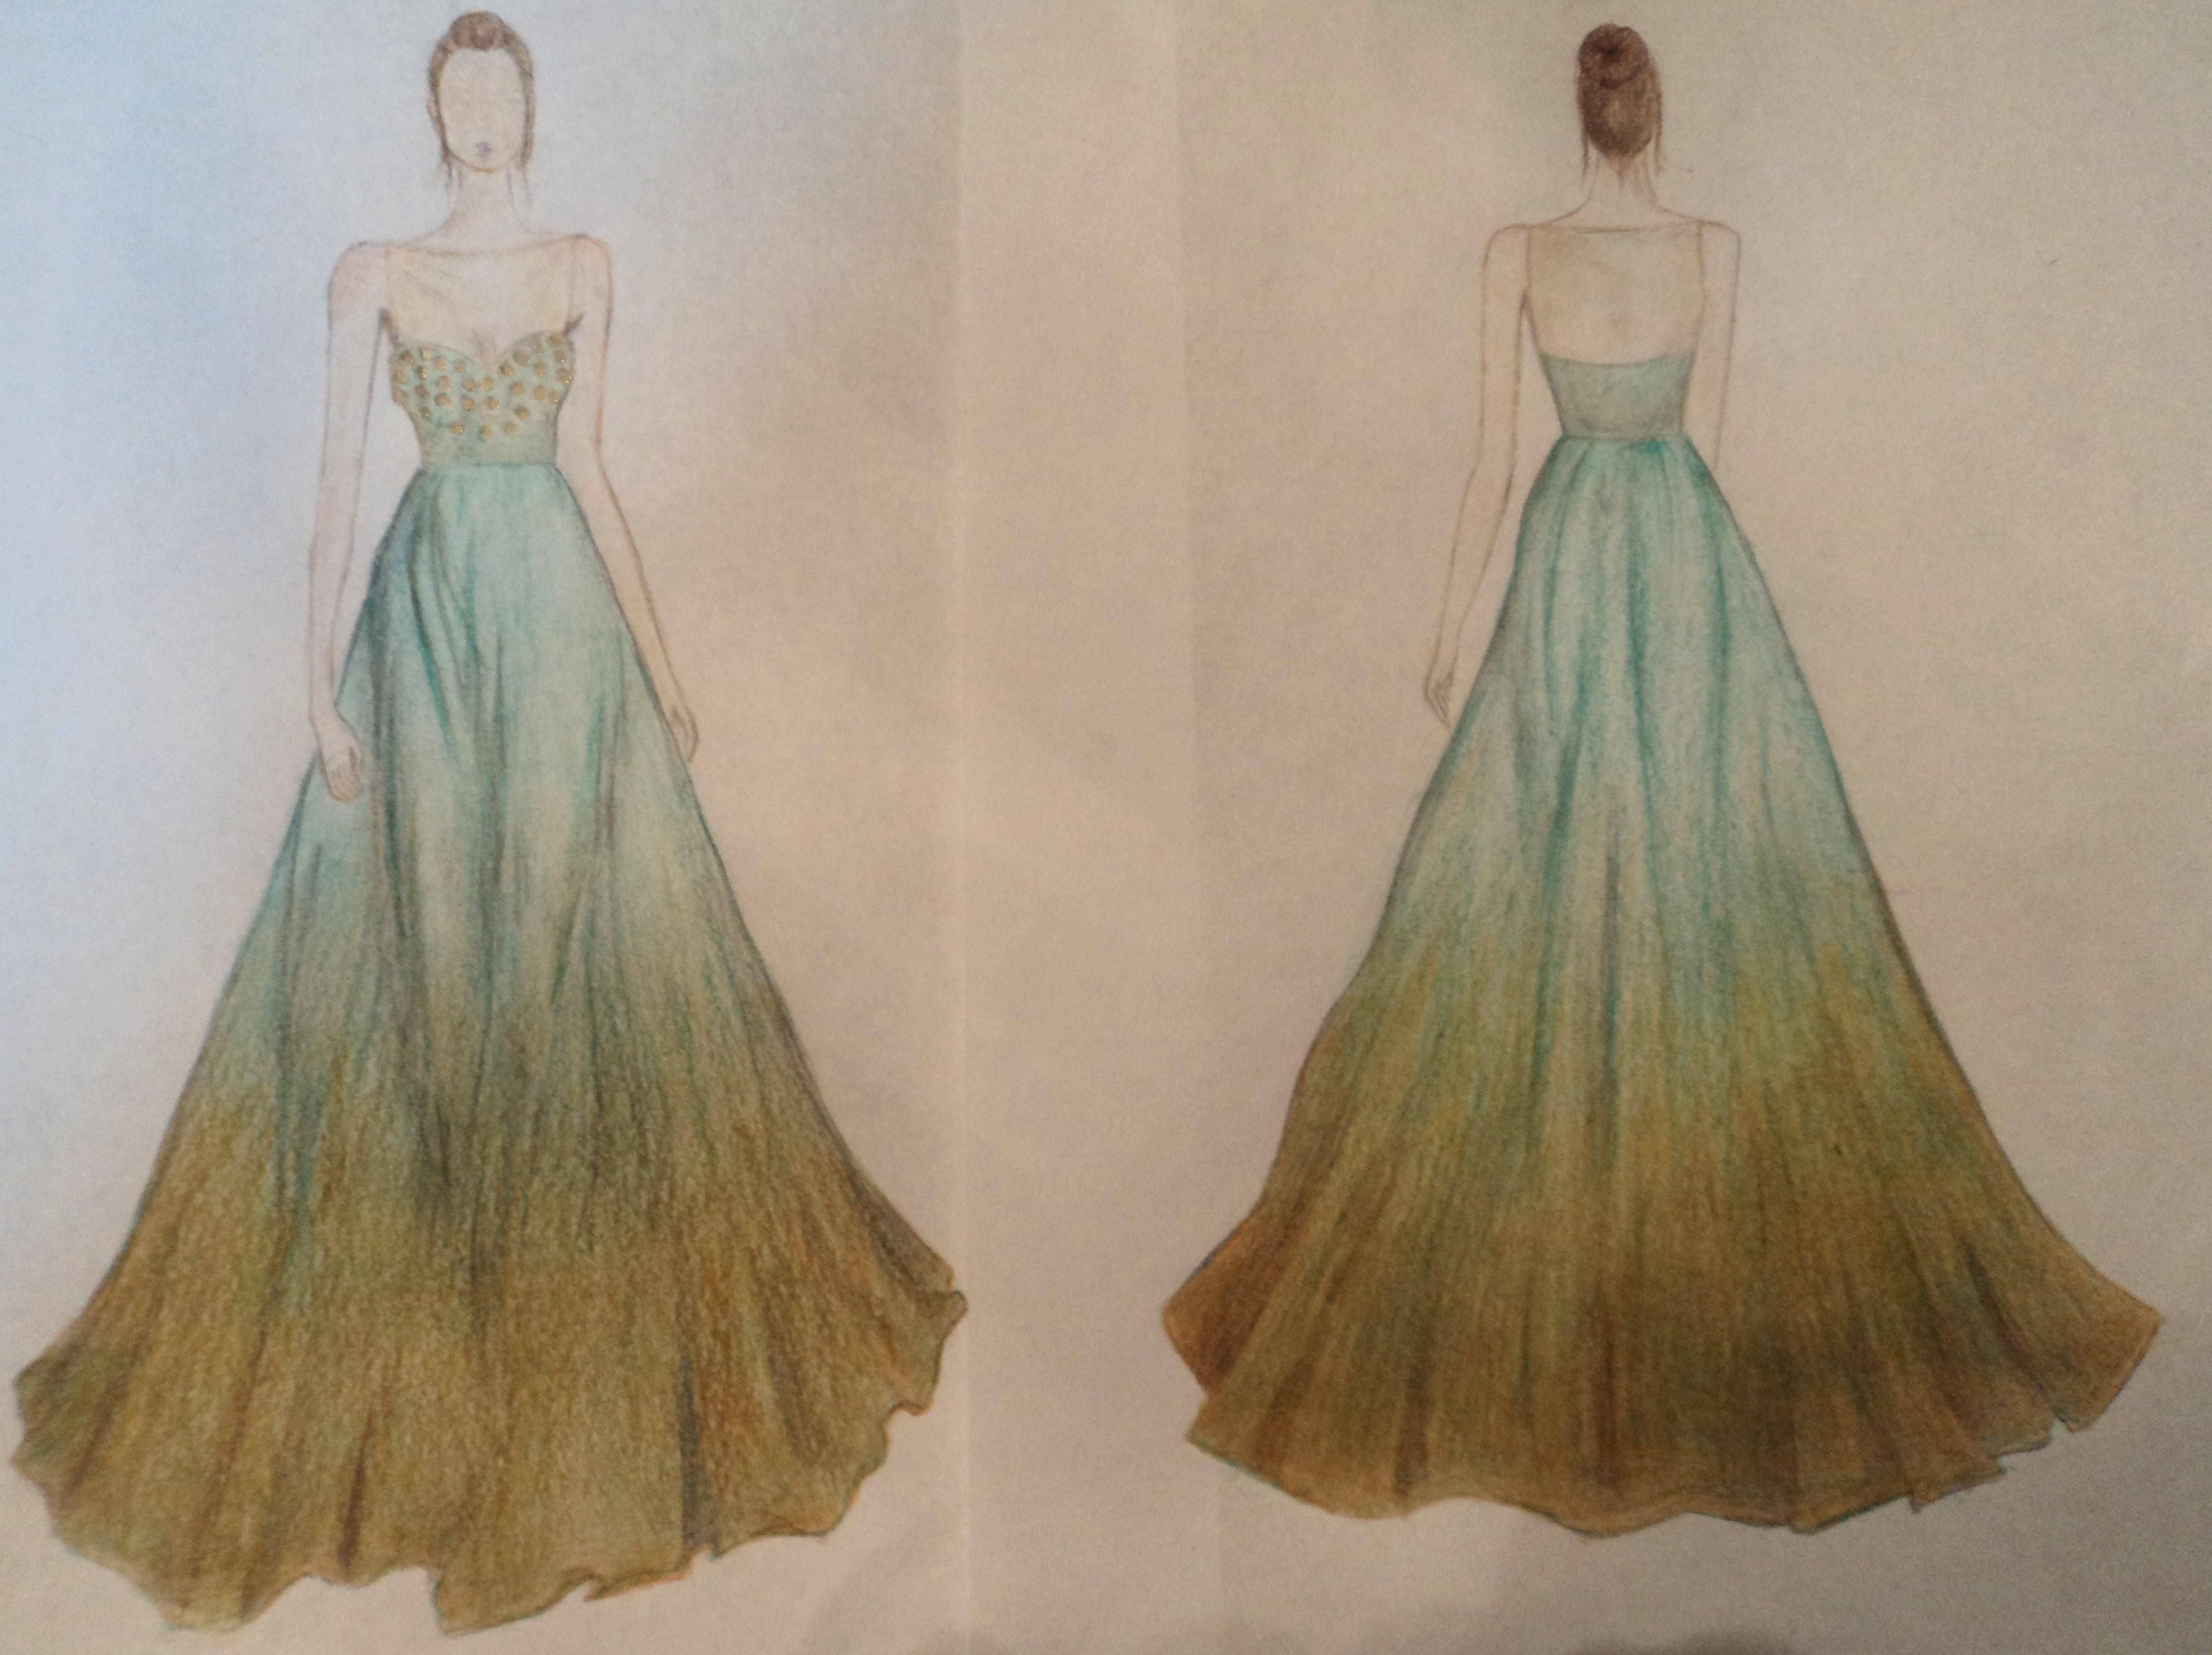 Images of sketched dresses for prom